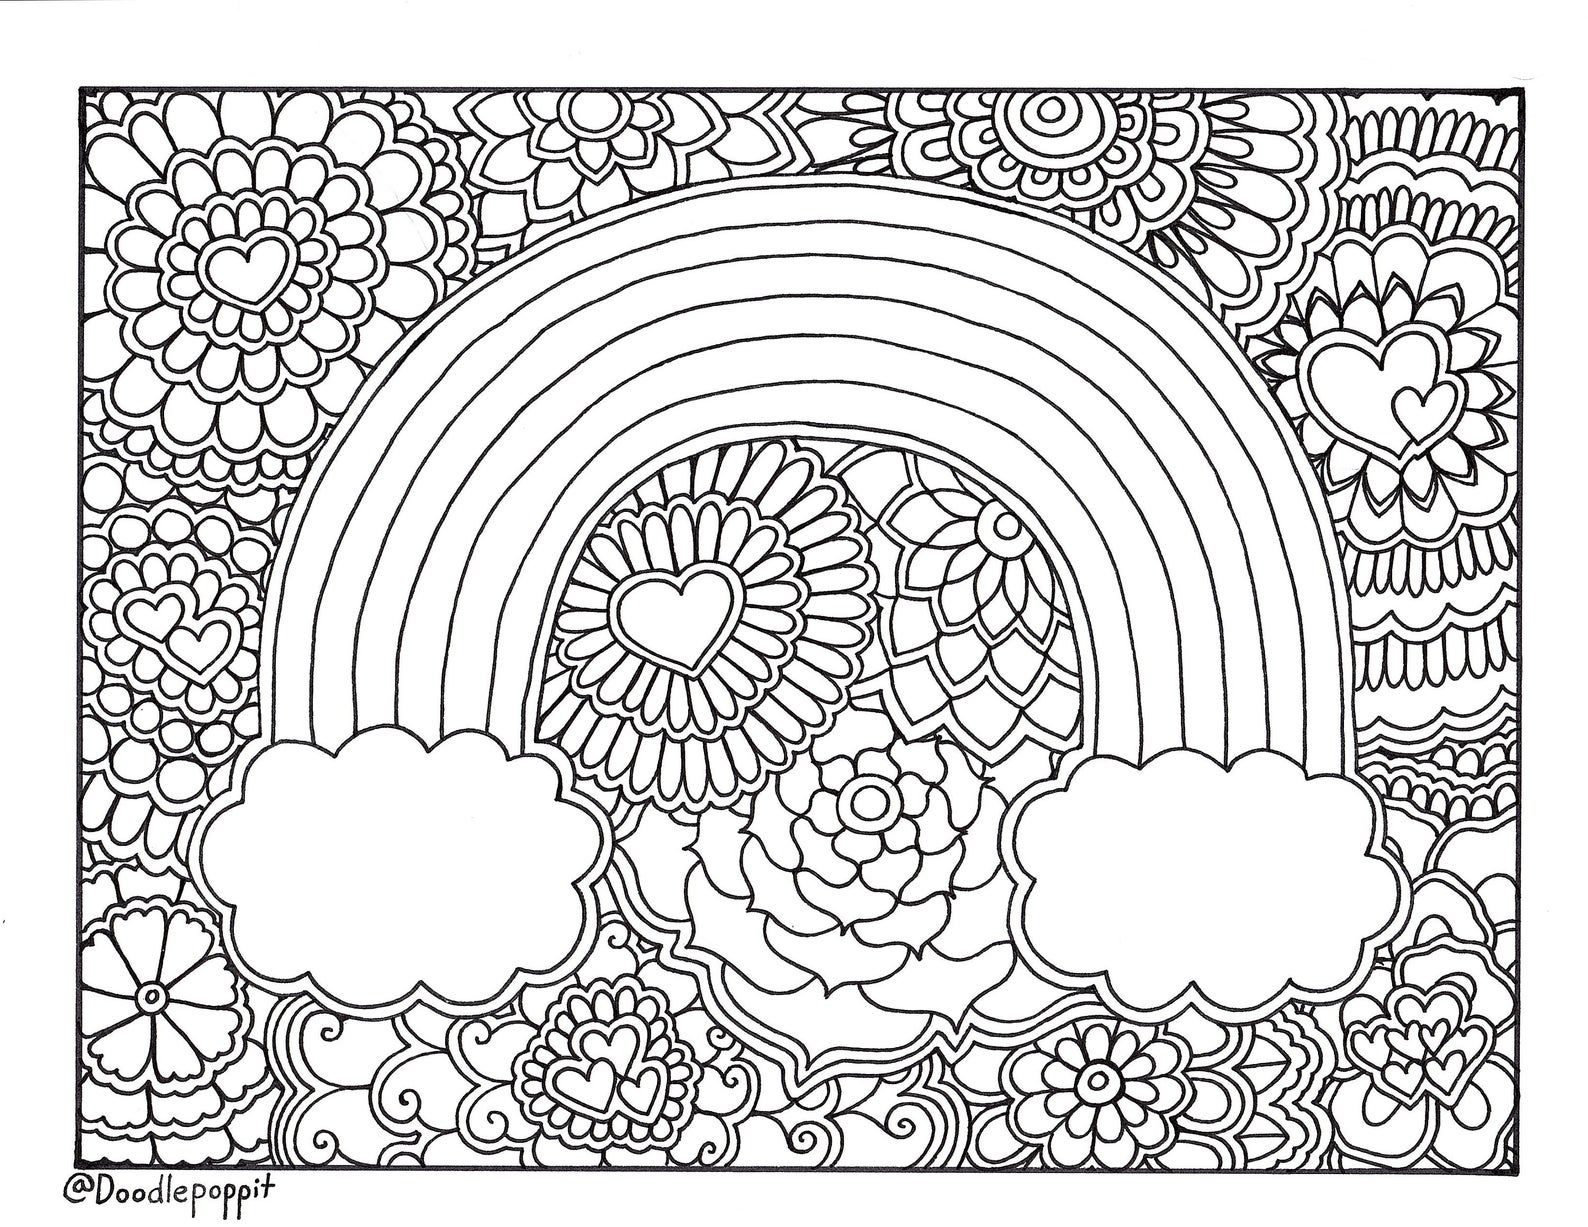 Rainbow Pride Coloring Page Coloring Book Page Printable Etsy In 2020 Abstract Coloring Pages Unicorn Coloring Pages Coloring Book Pages